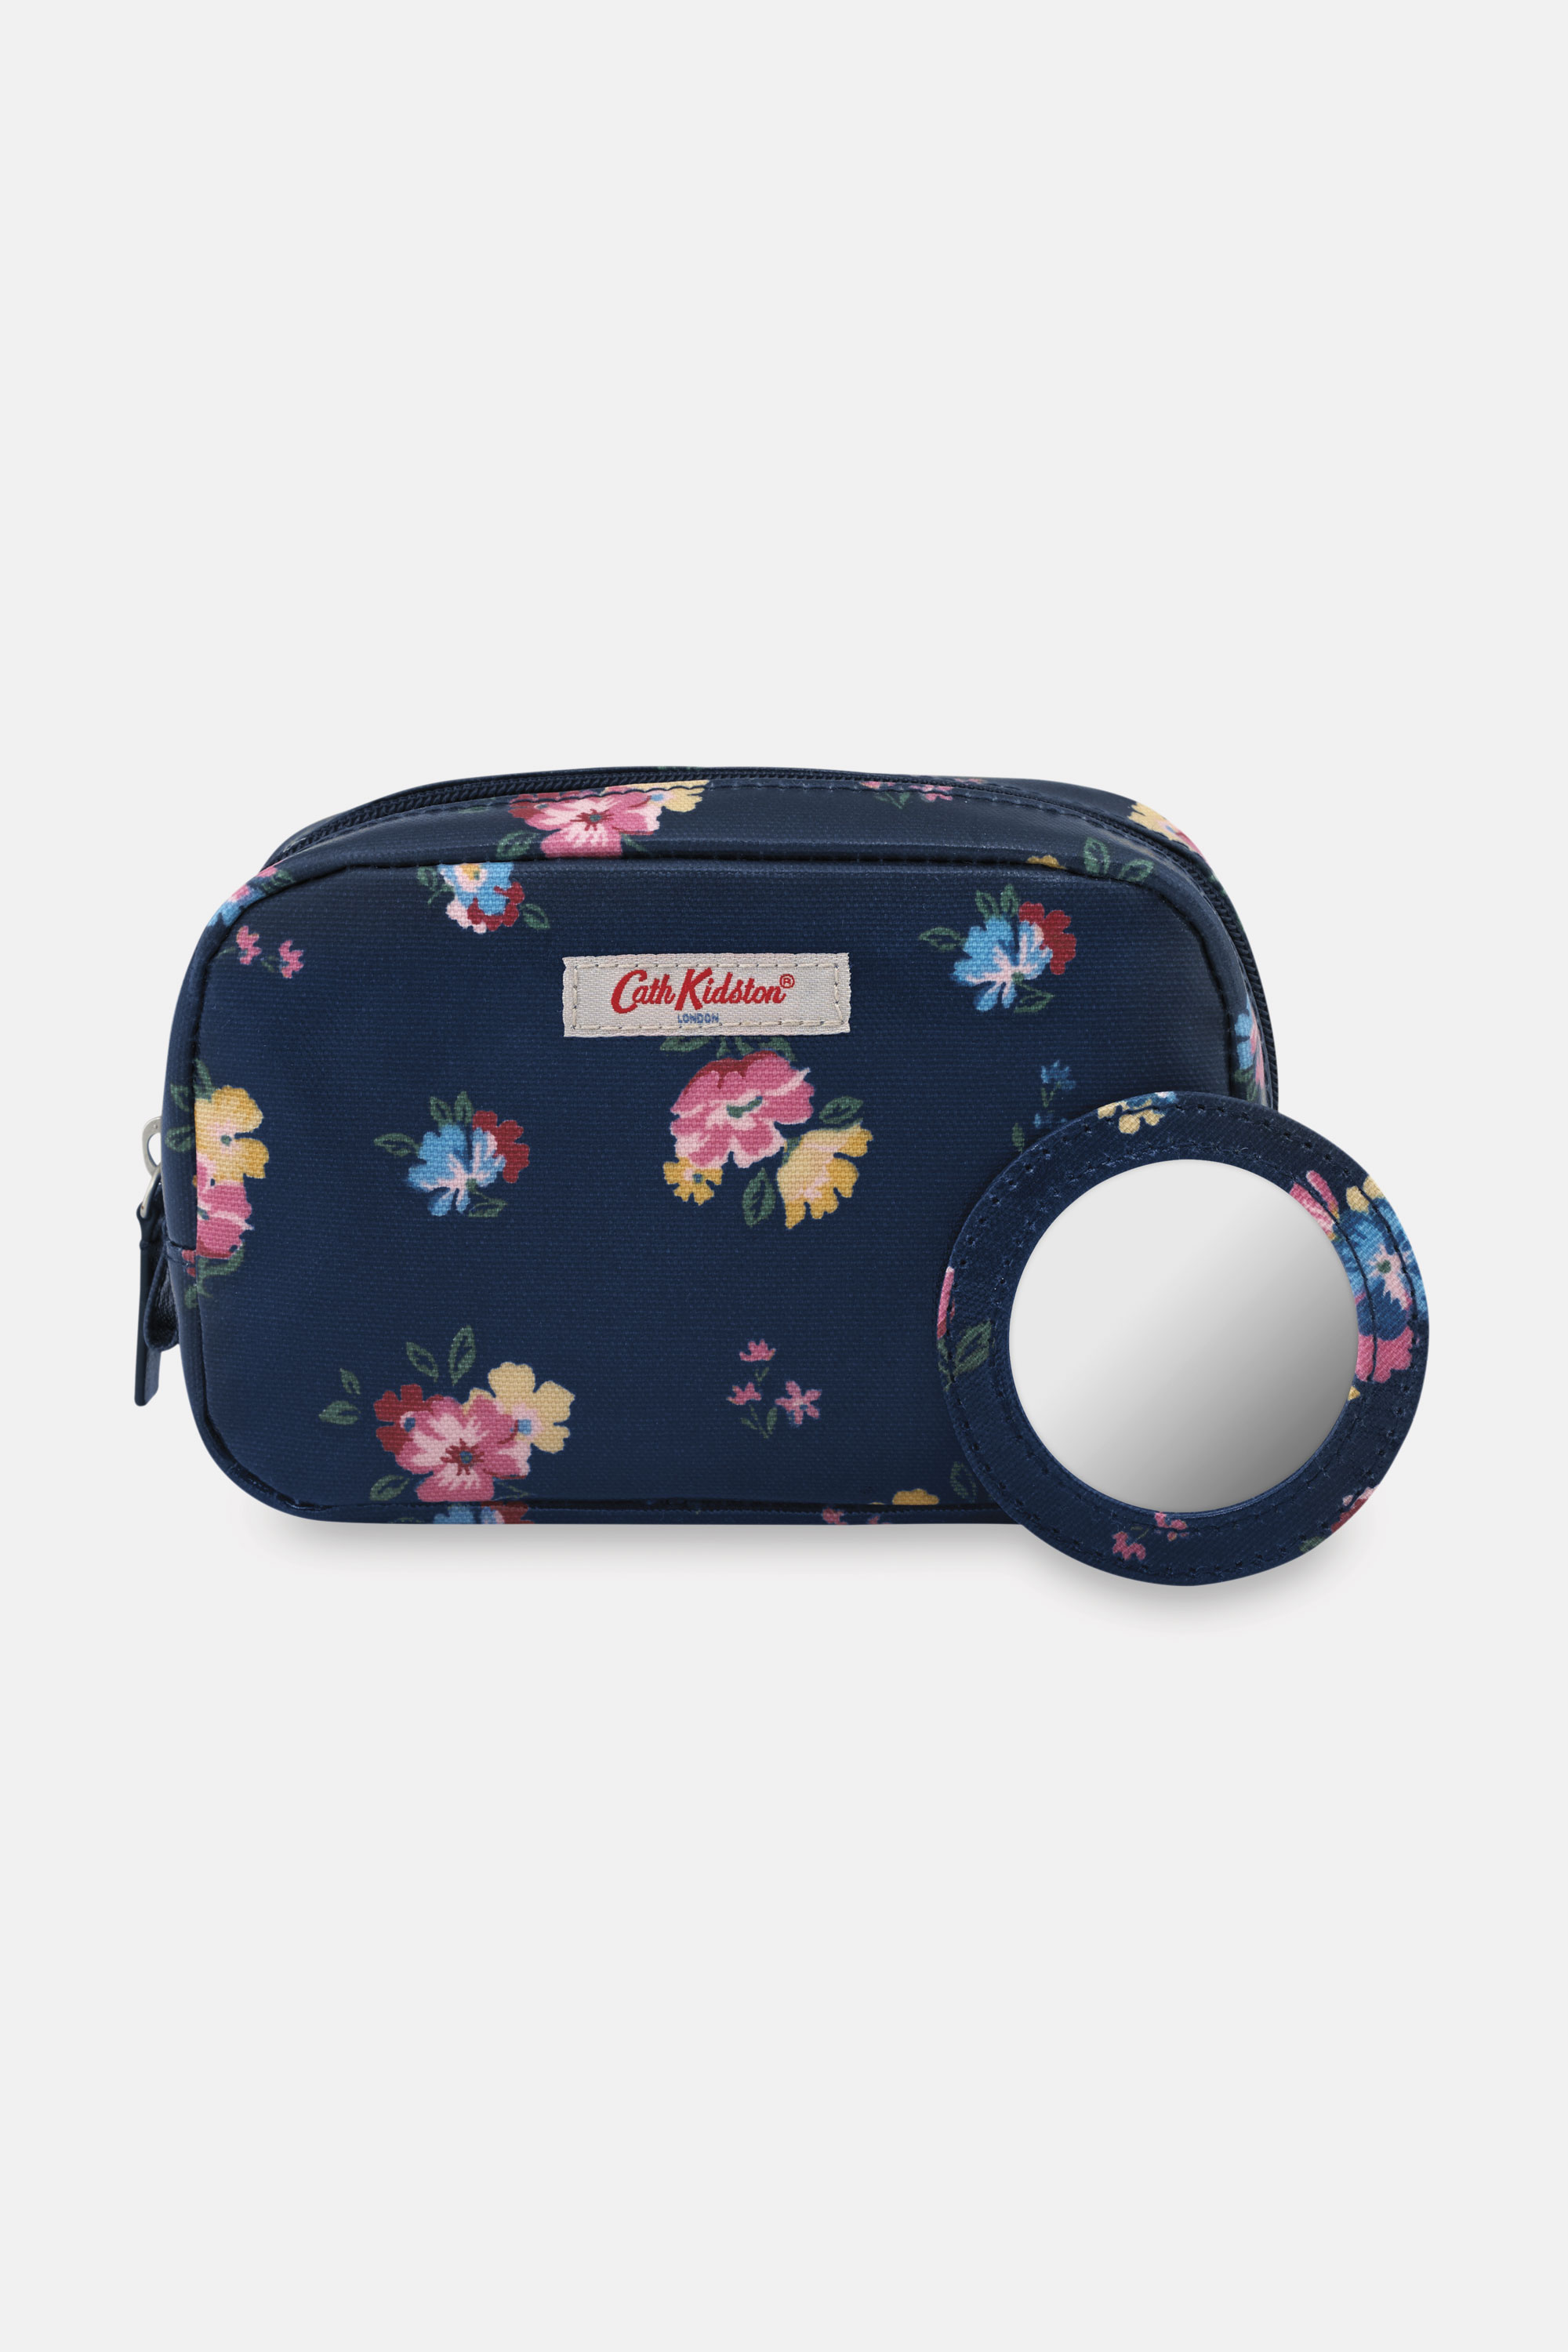 Cath Kidston Park Meadow Bunch Classic Makeup Case in Navy